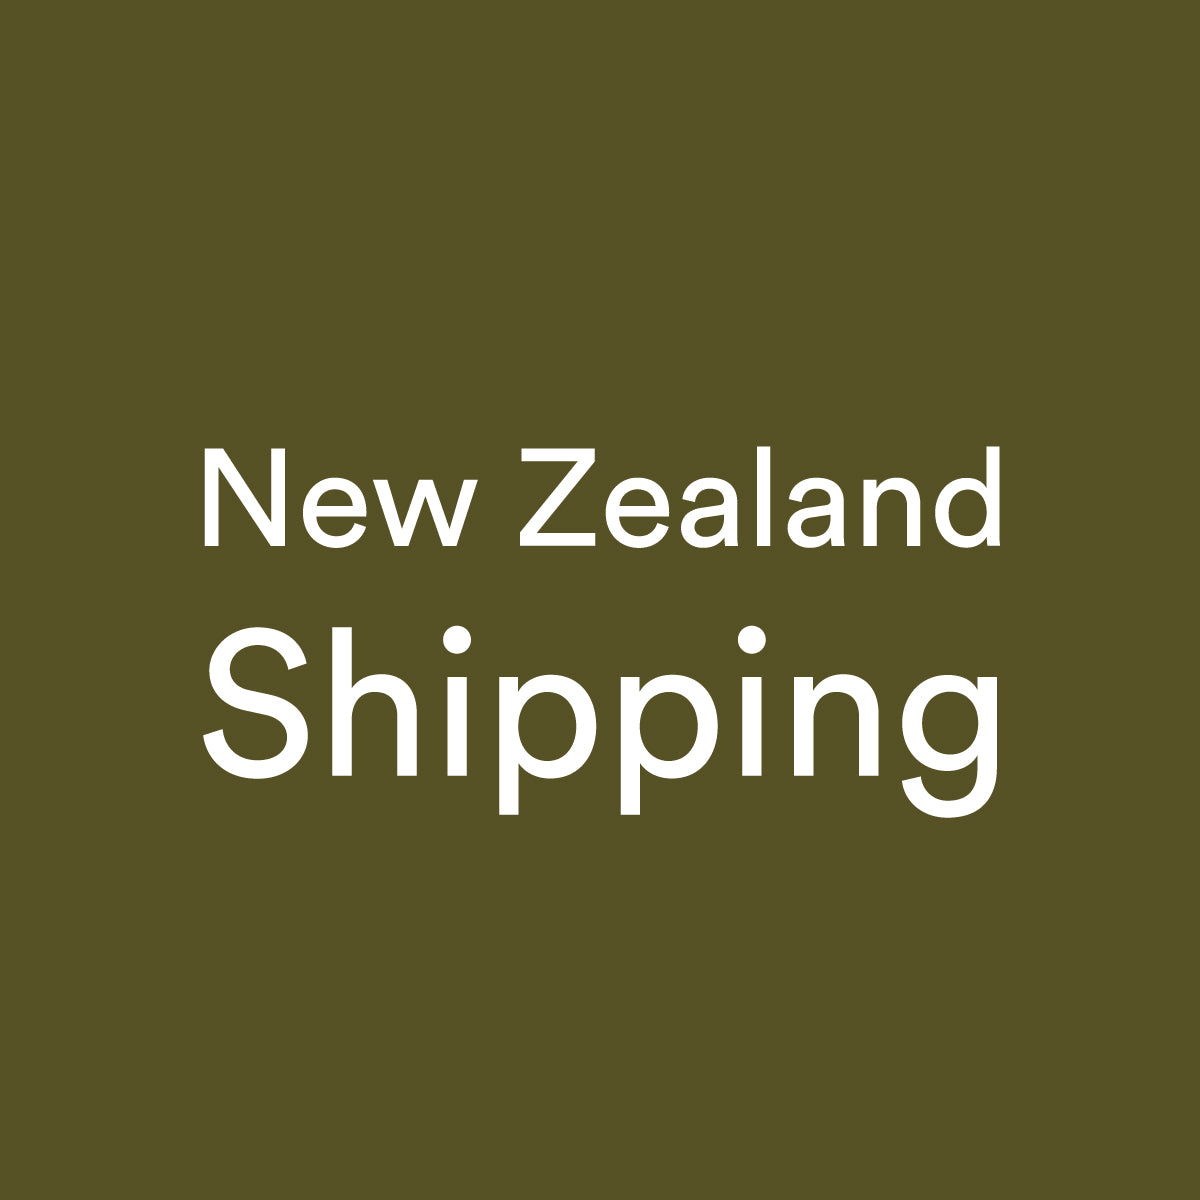 New Zealand Shipping - Add On